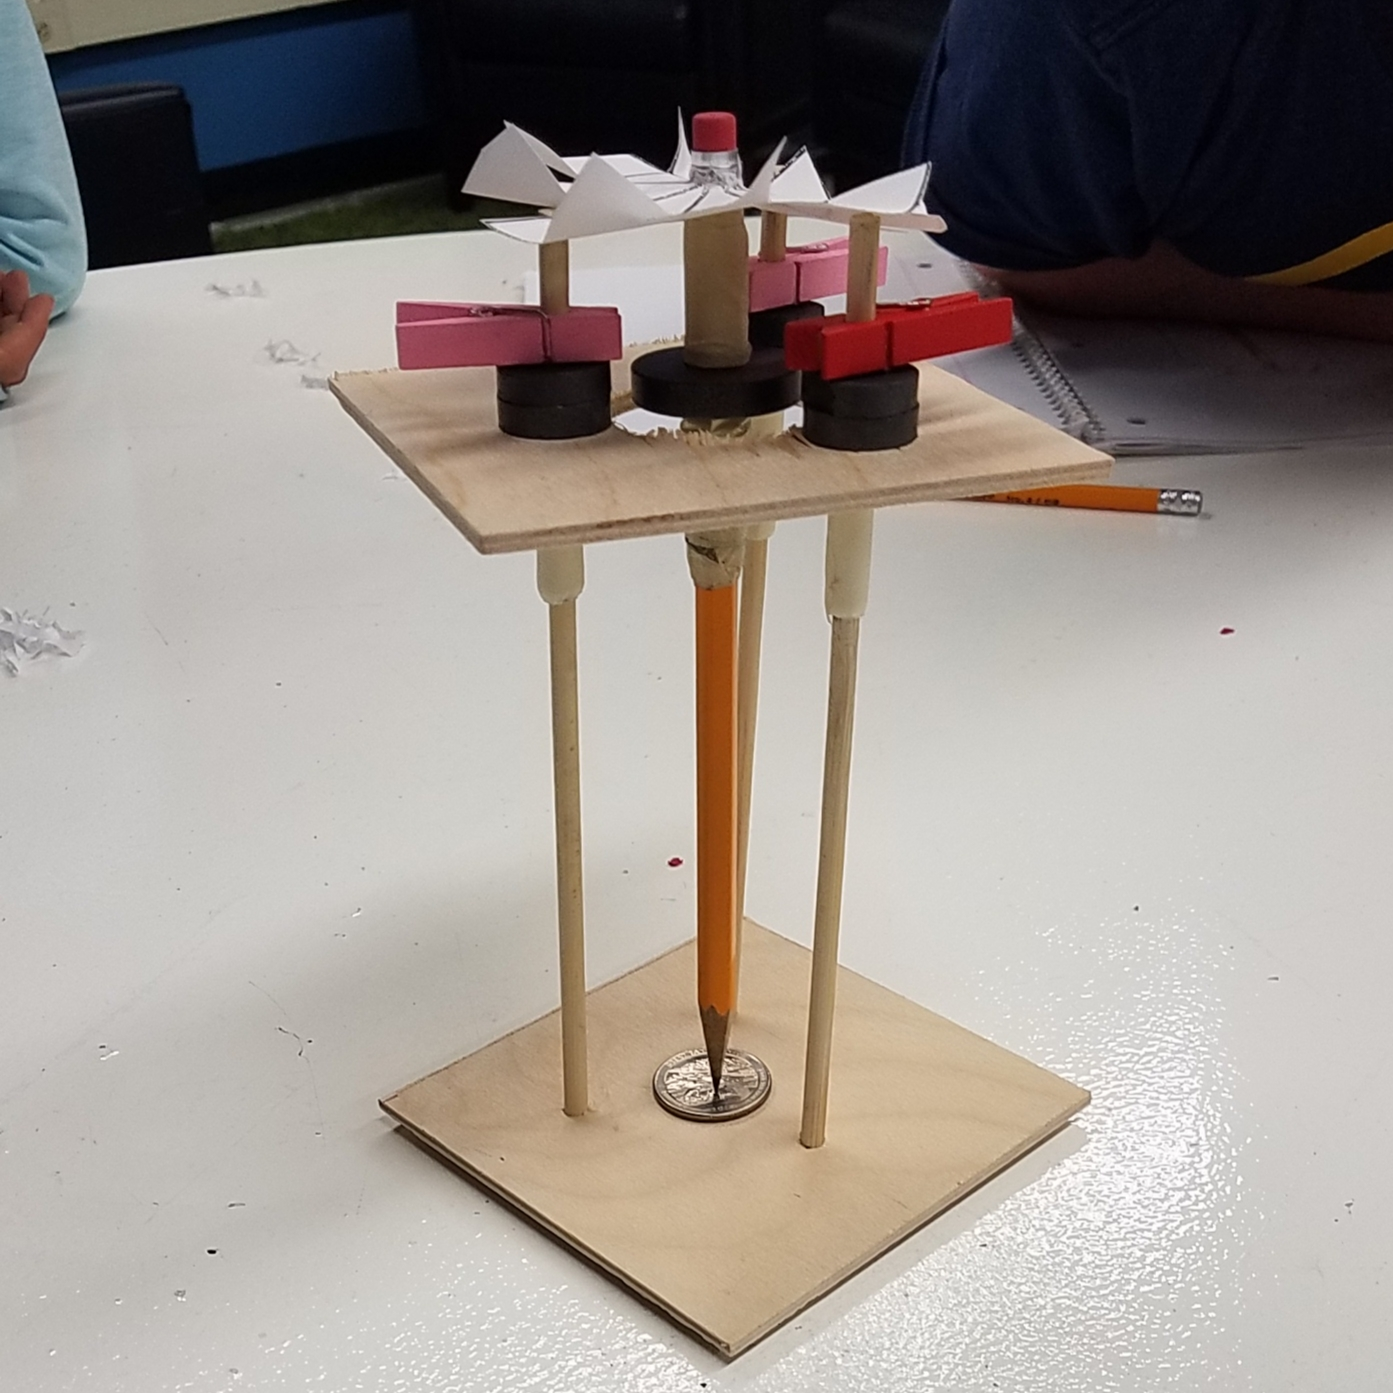 3rd Graders learn to build a Magnetic Wind Turbine